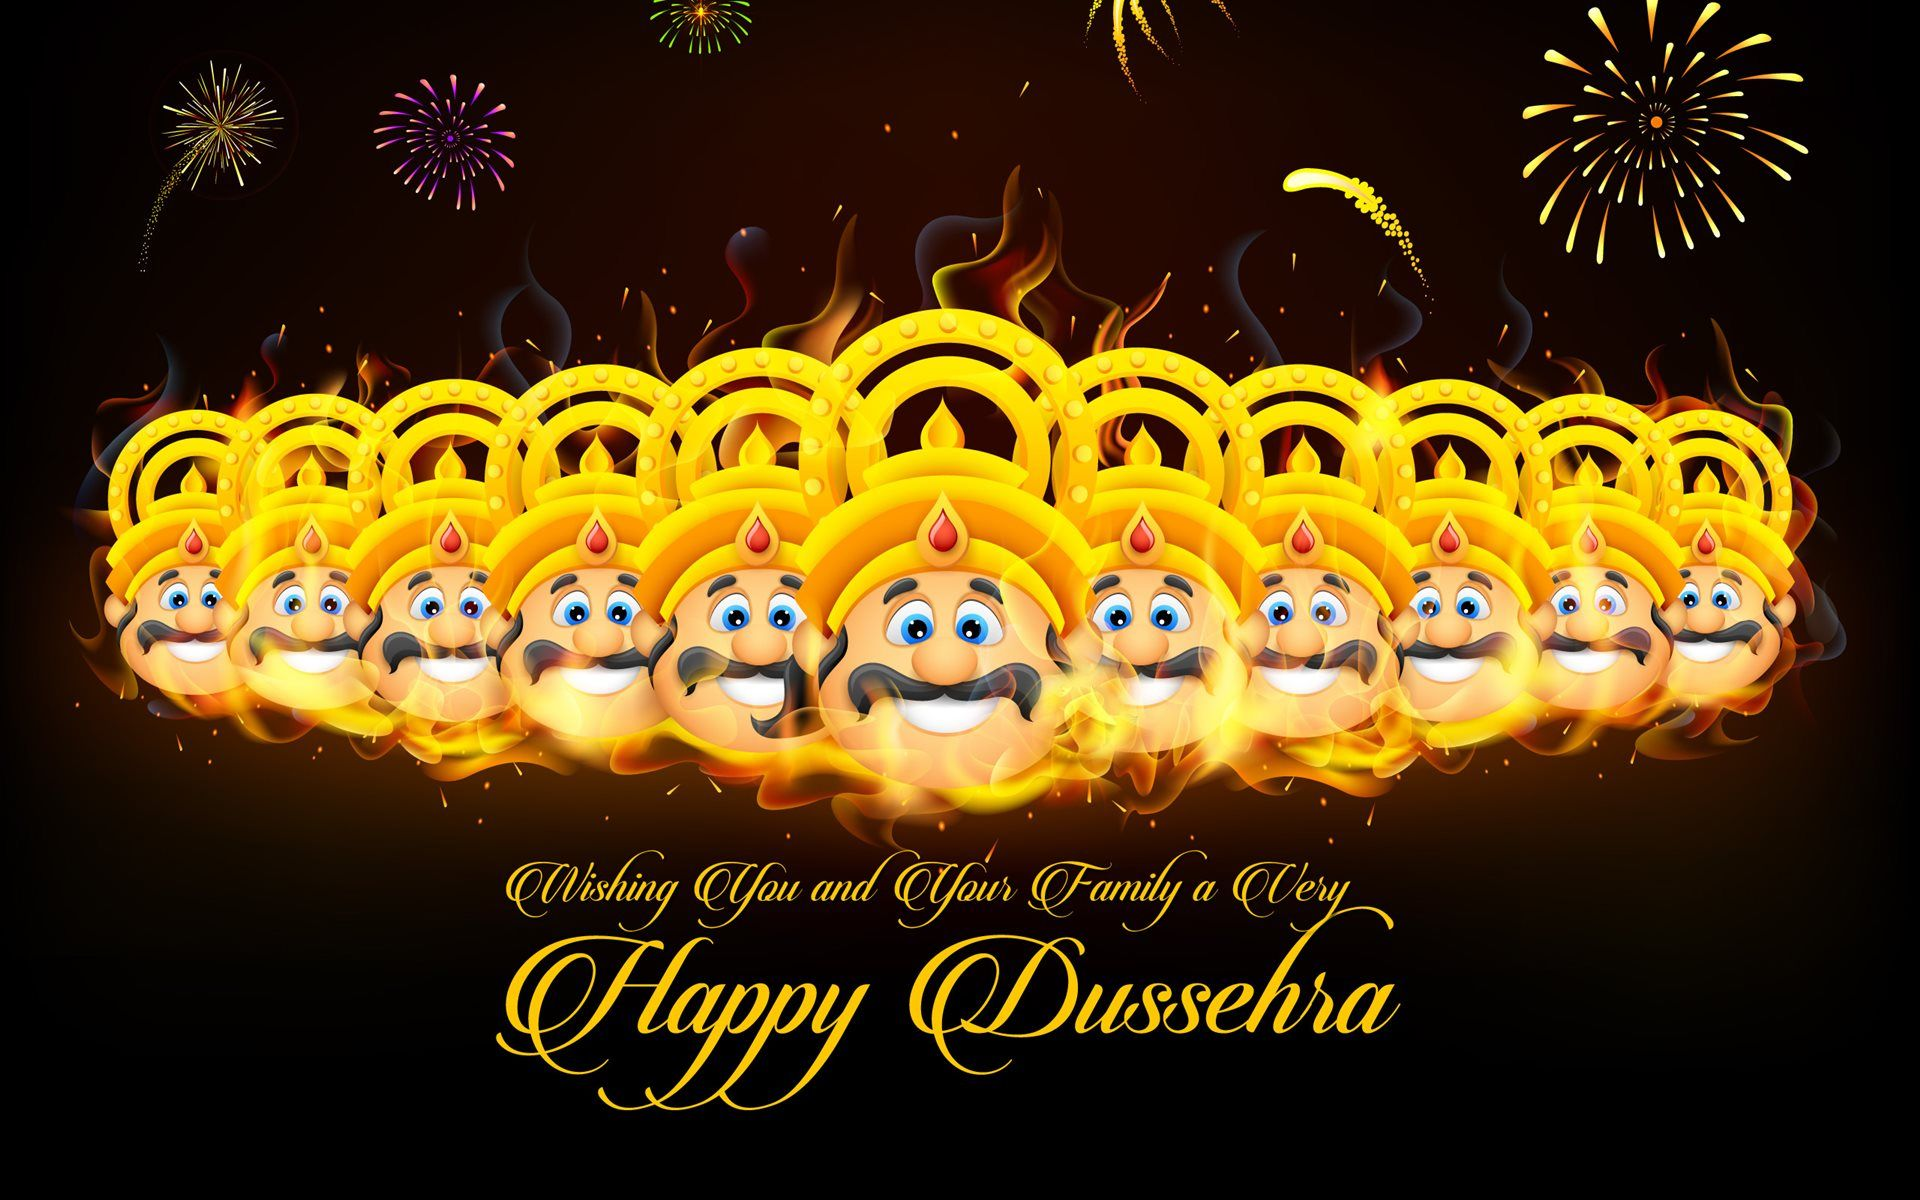 Happy Dussehra Ravan Dahan Vijay Dashami 2015 Wishes, Pics, Photos, Videos | Dussehra images, Happy dasara images hd, Happy dussehra photos